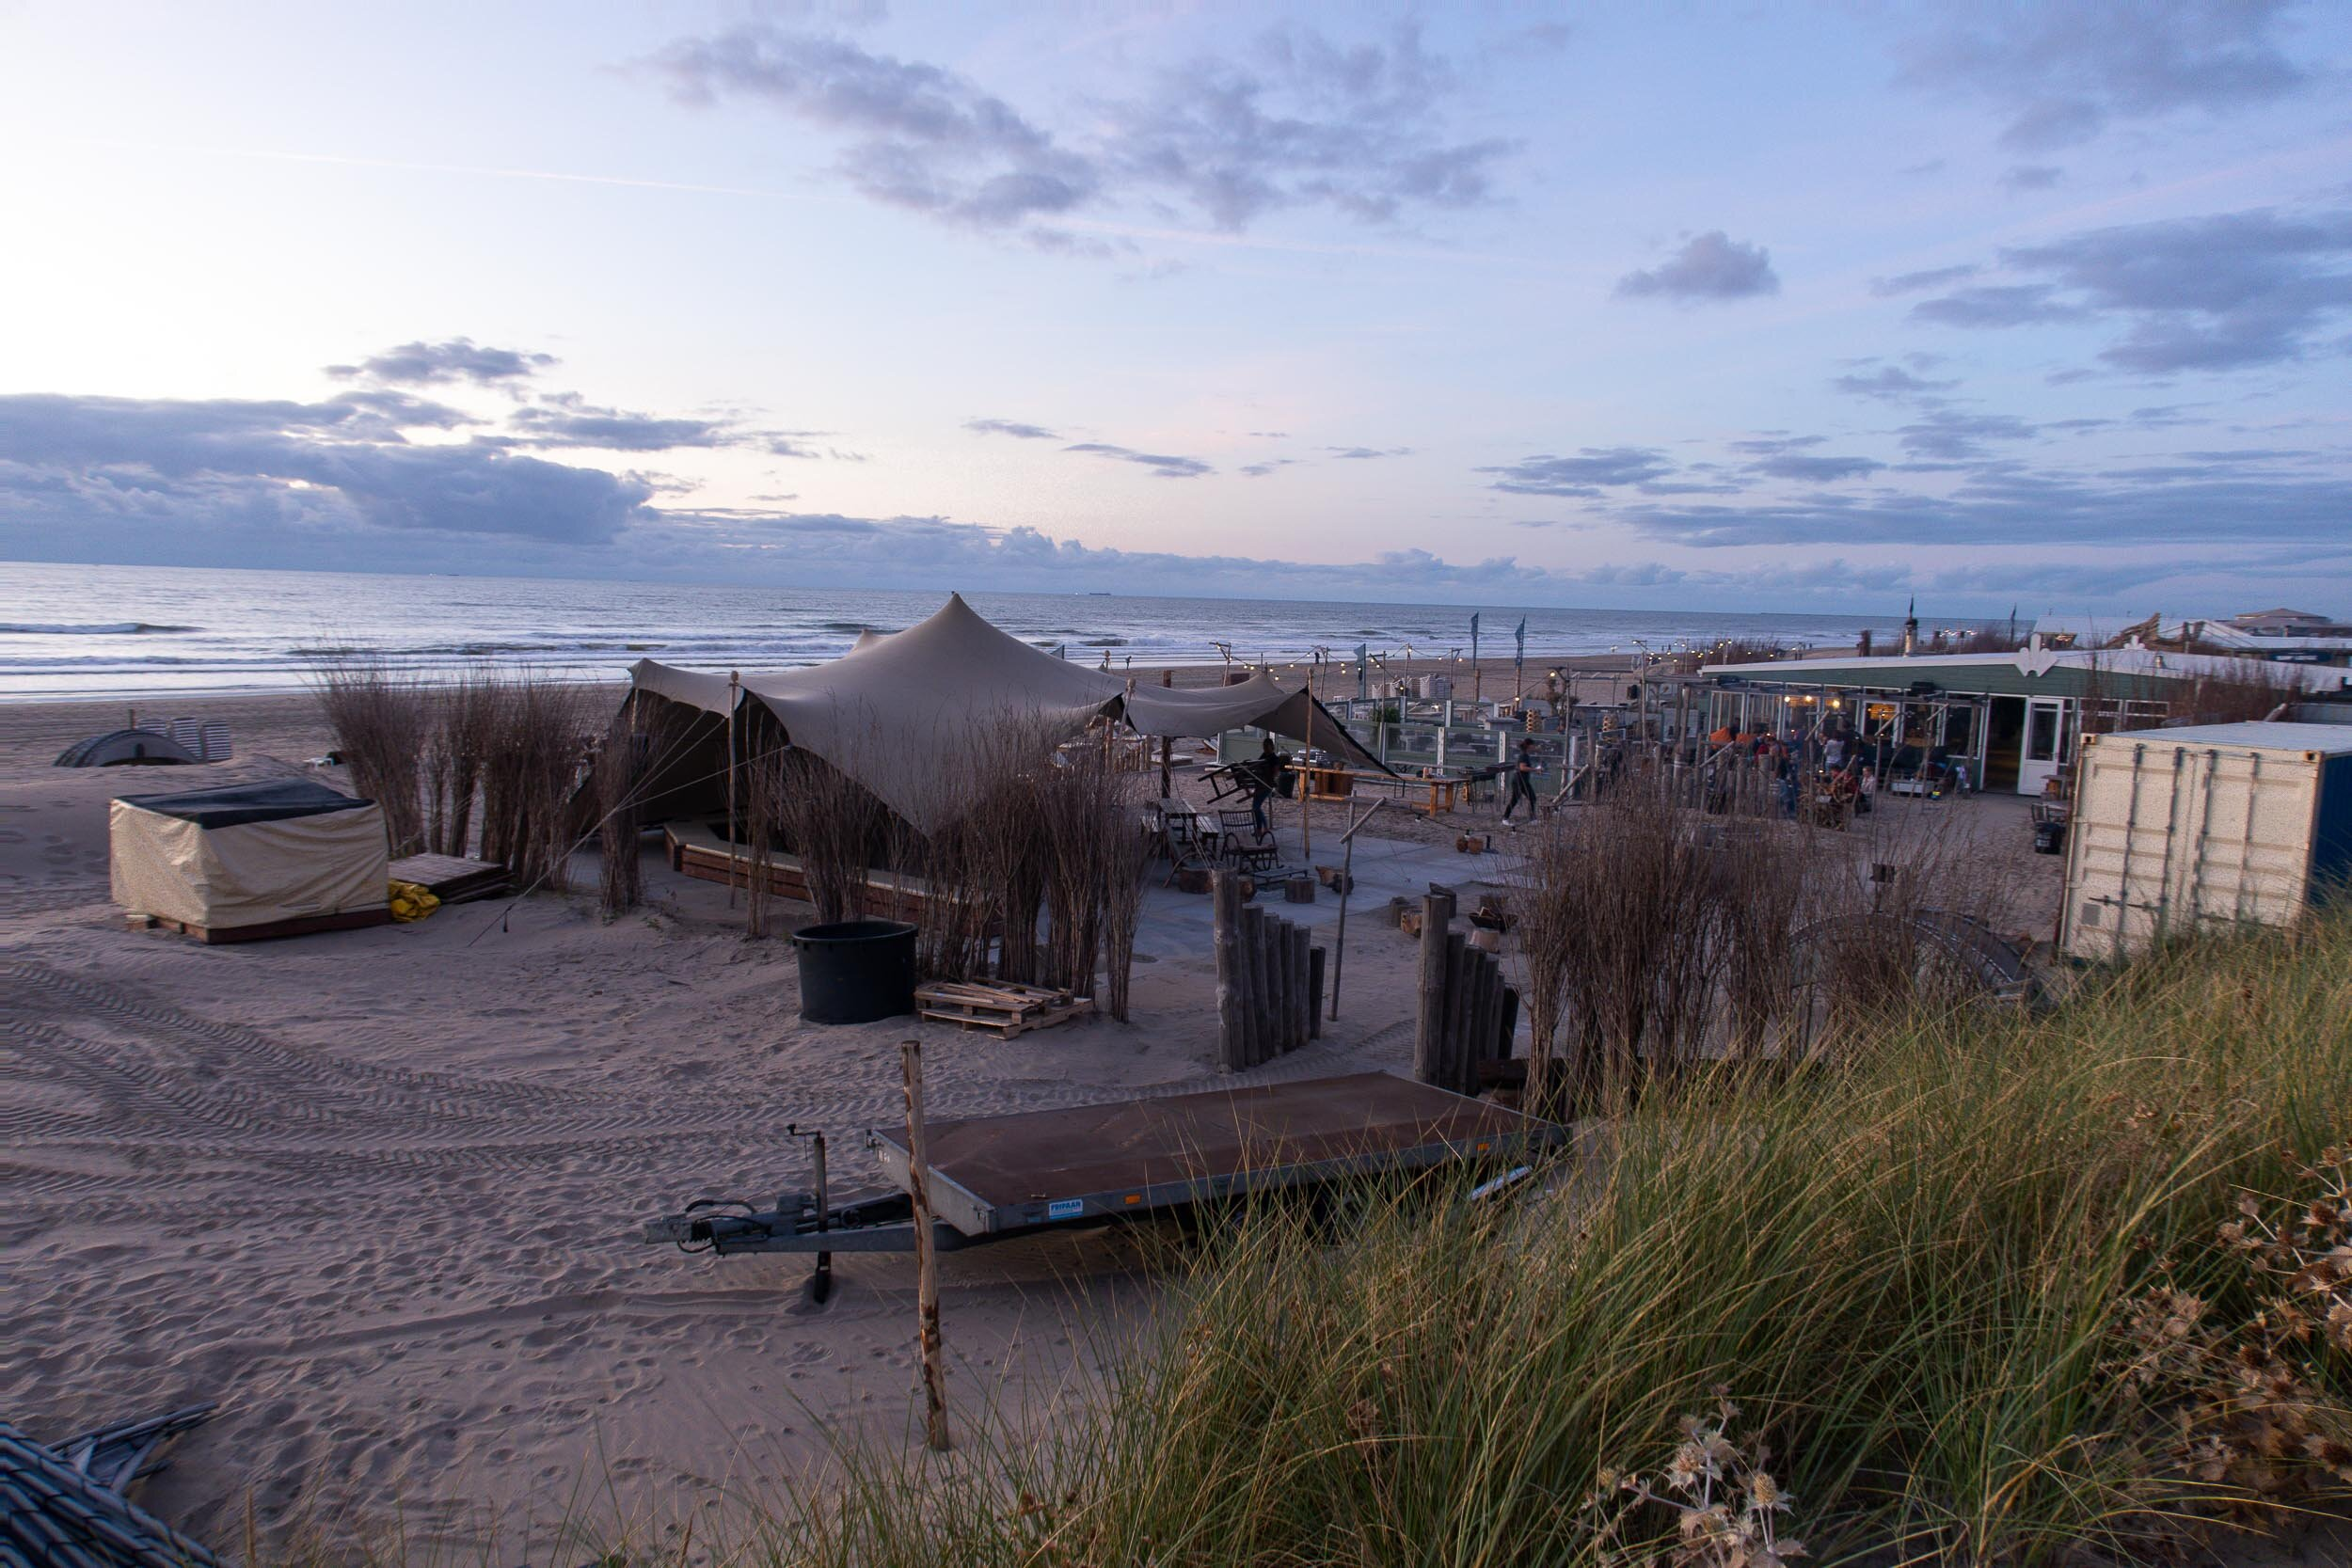 Travel tips and tricks for Zandvoort, Netherlands and surrounding areas.